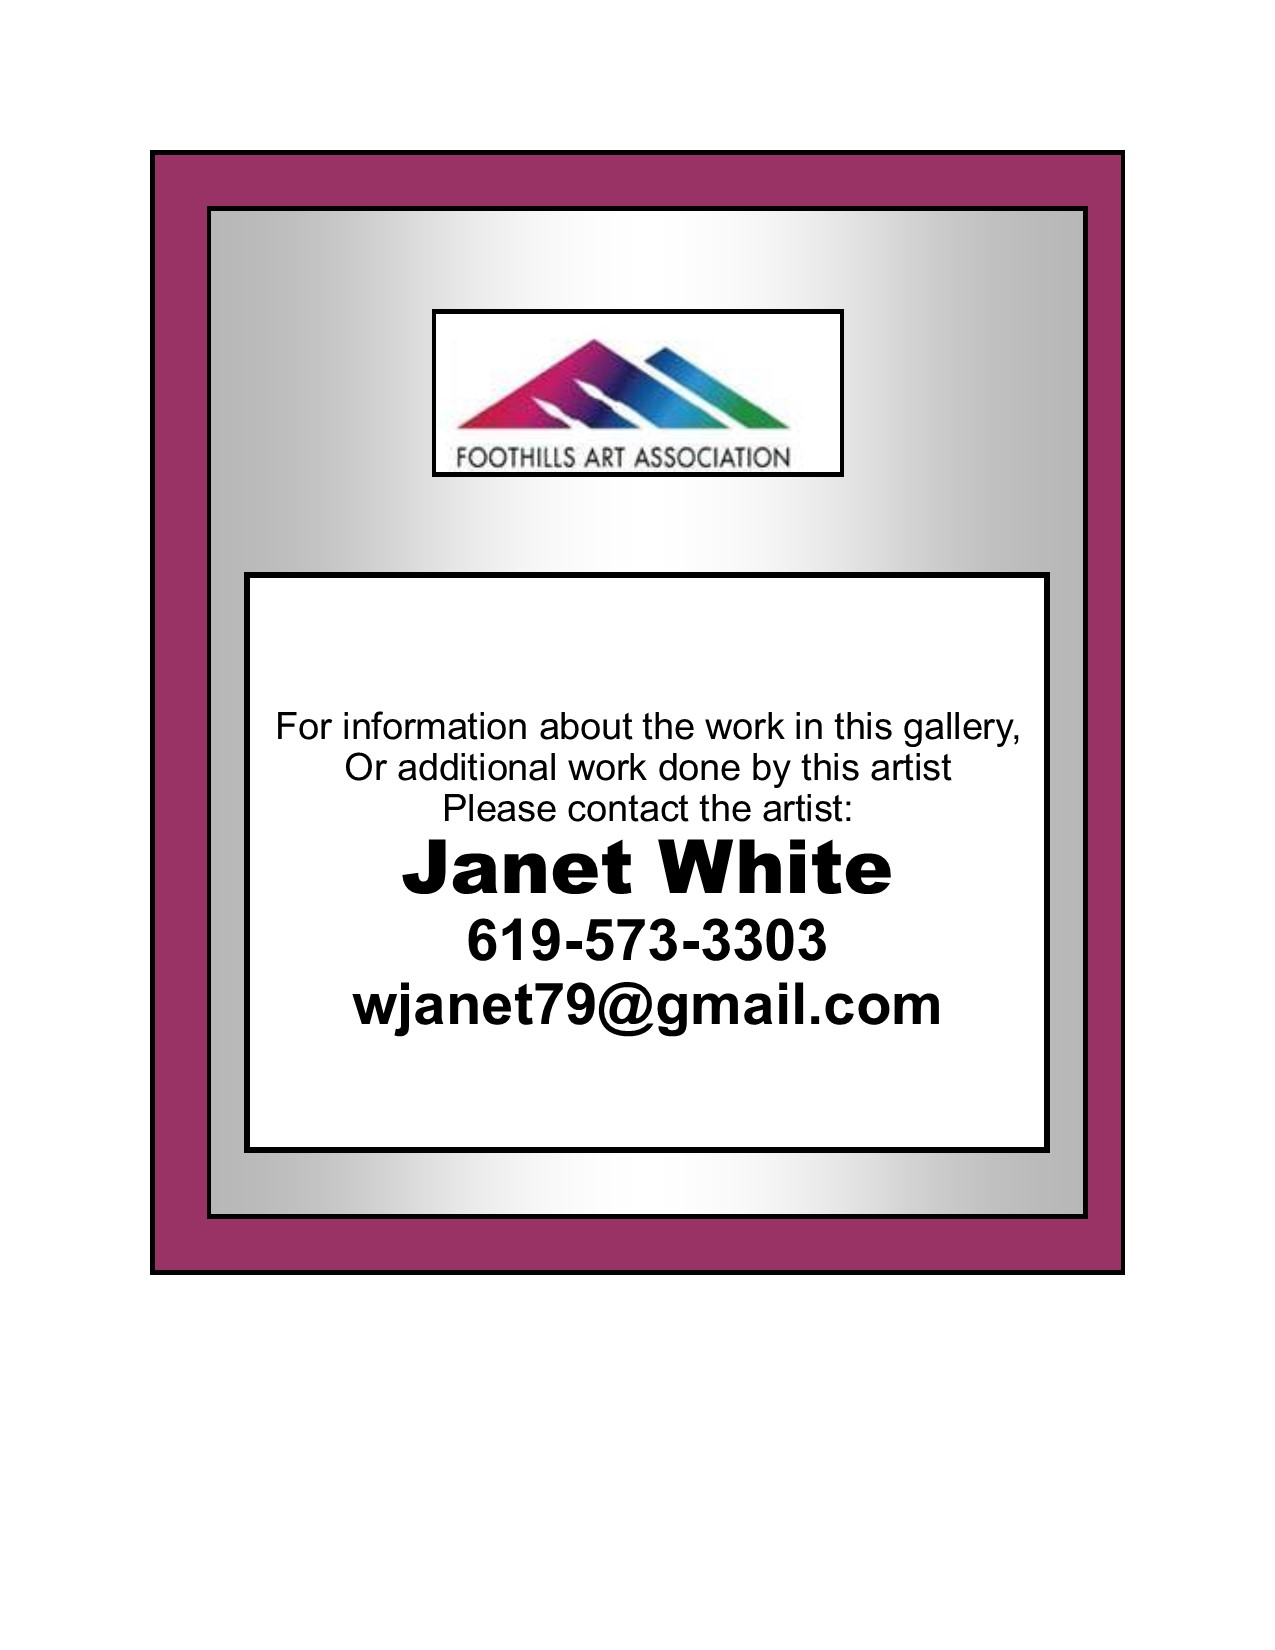 Janet White Contact Info